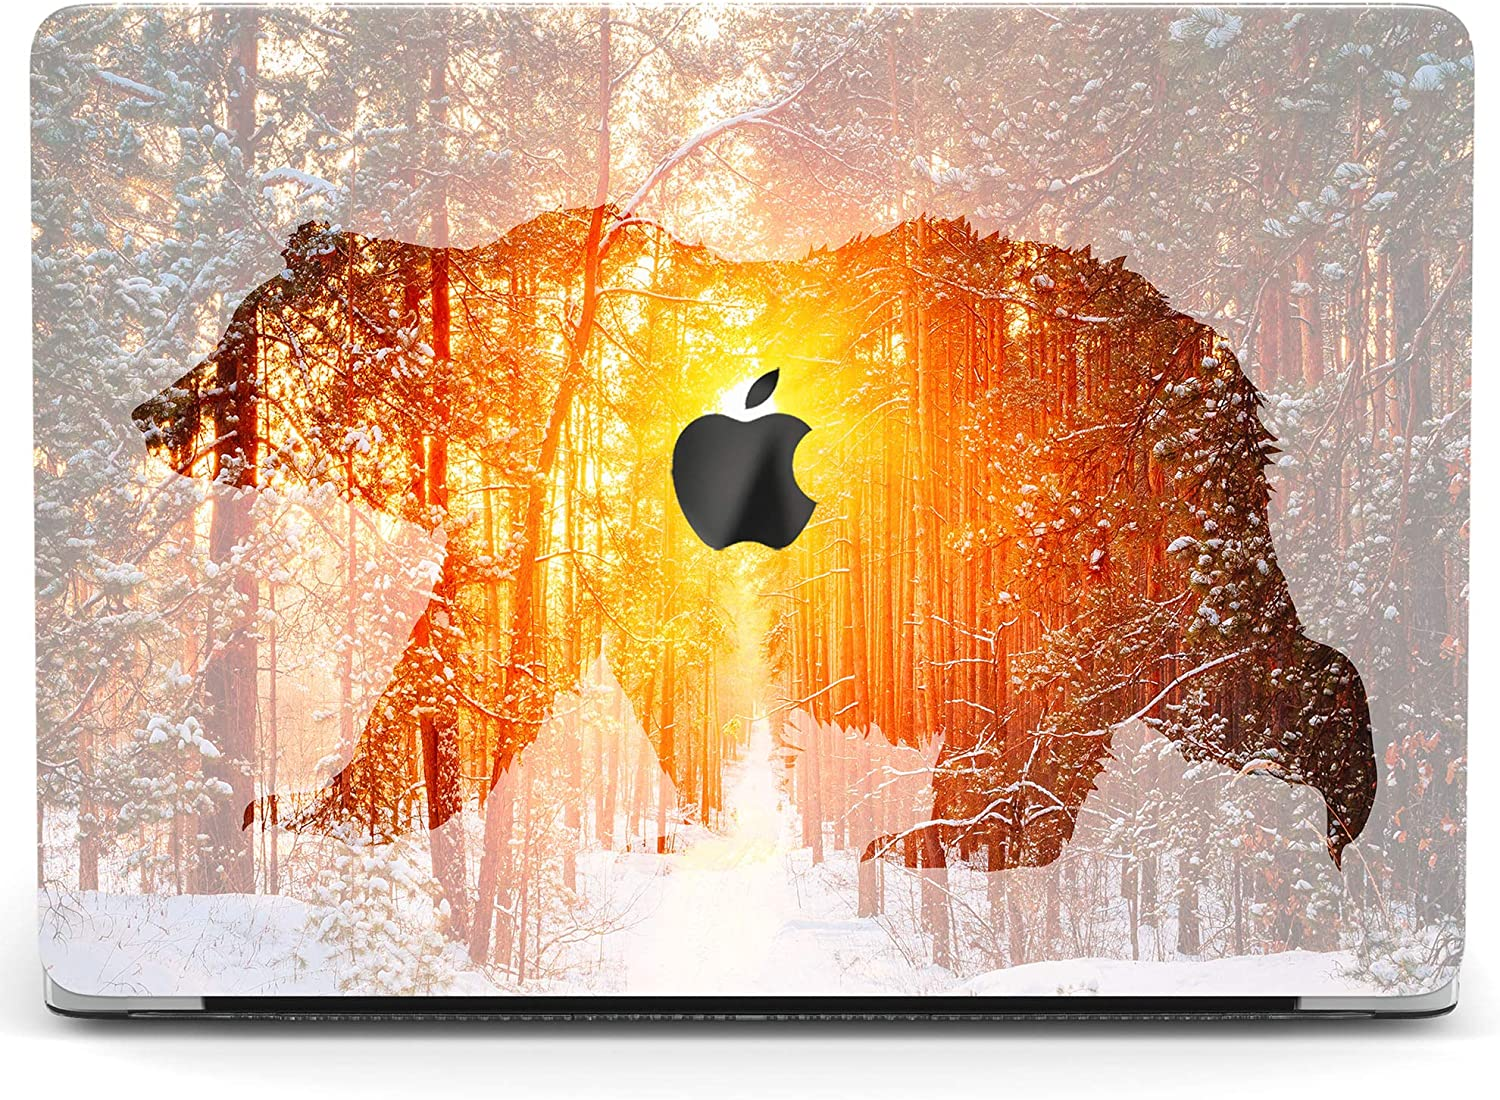 Wonder Wild Case for MacBook Air 13 inch Pro 15 2019 2018 Retina 12 11 Apple Hard Mac Protective Cover Touch Bar 2017 2016 2020 Plastic Laptop Print Bear Silhouette Nature Sunset Animal Winter Forest